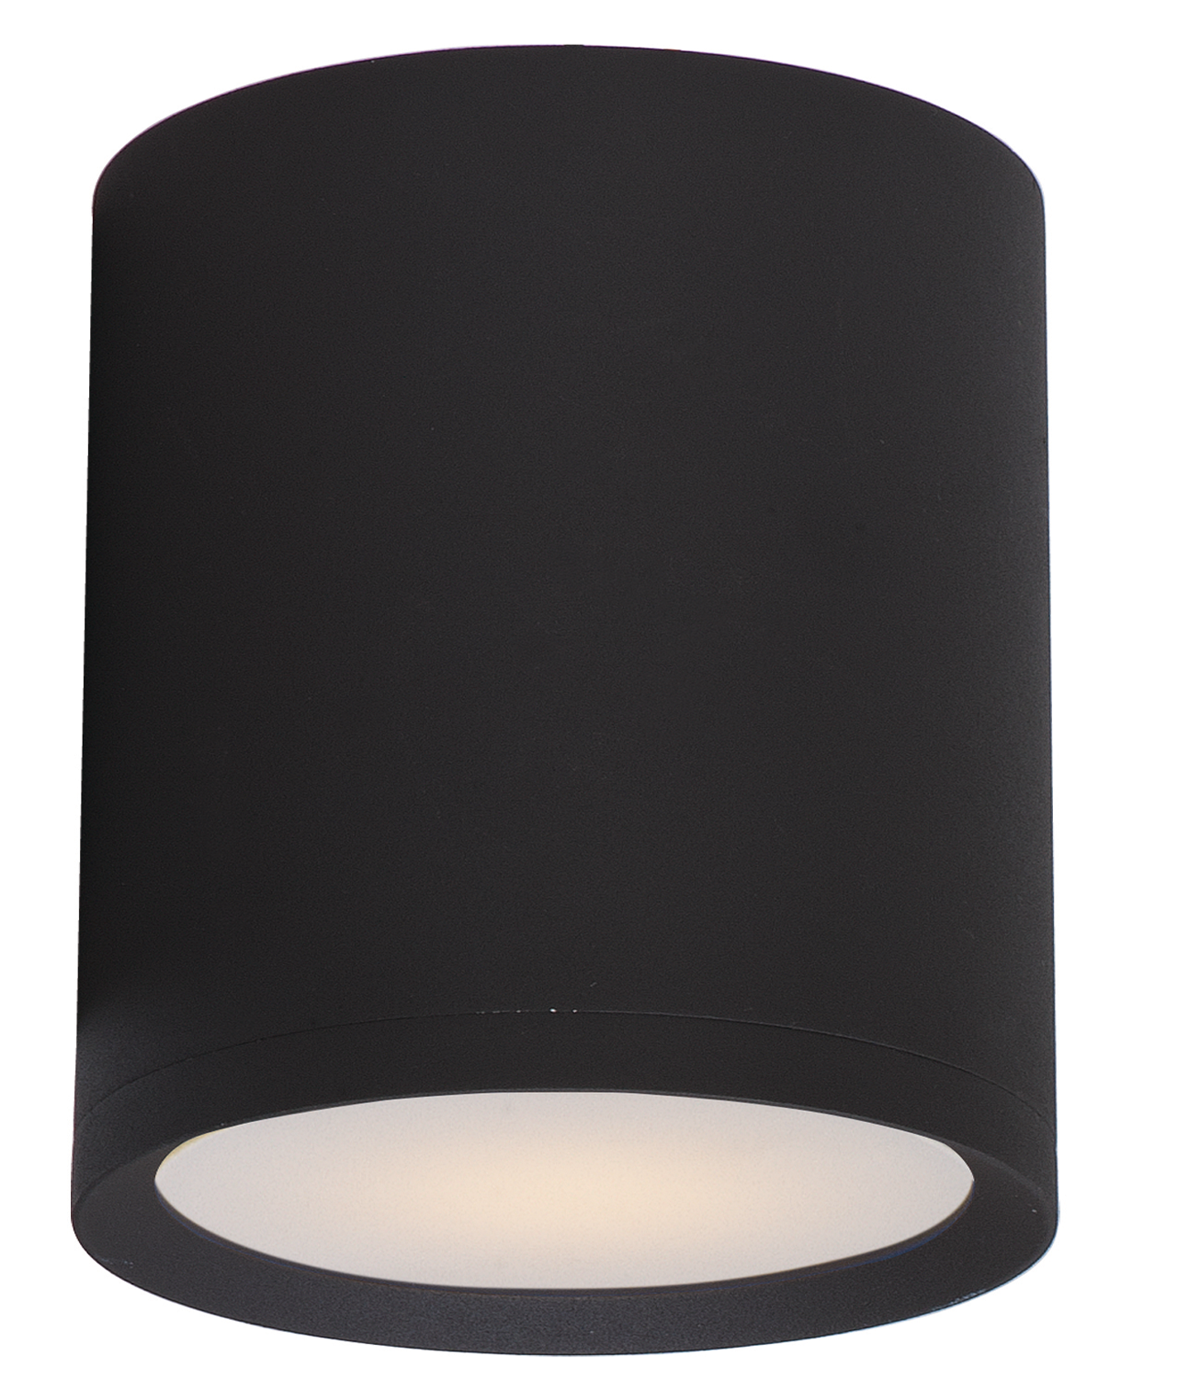 Outdoor Ceiling Light: Lightray Outdoor Flush Mount by Maxim Lighting | 6100ABZ,Lighting